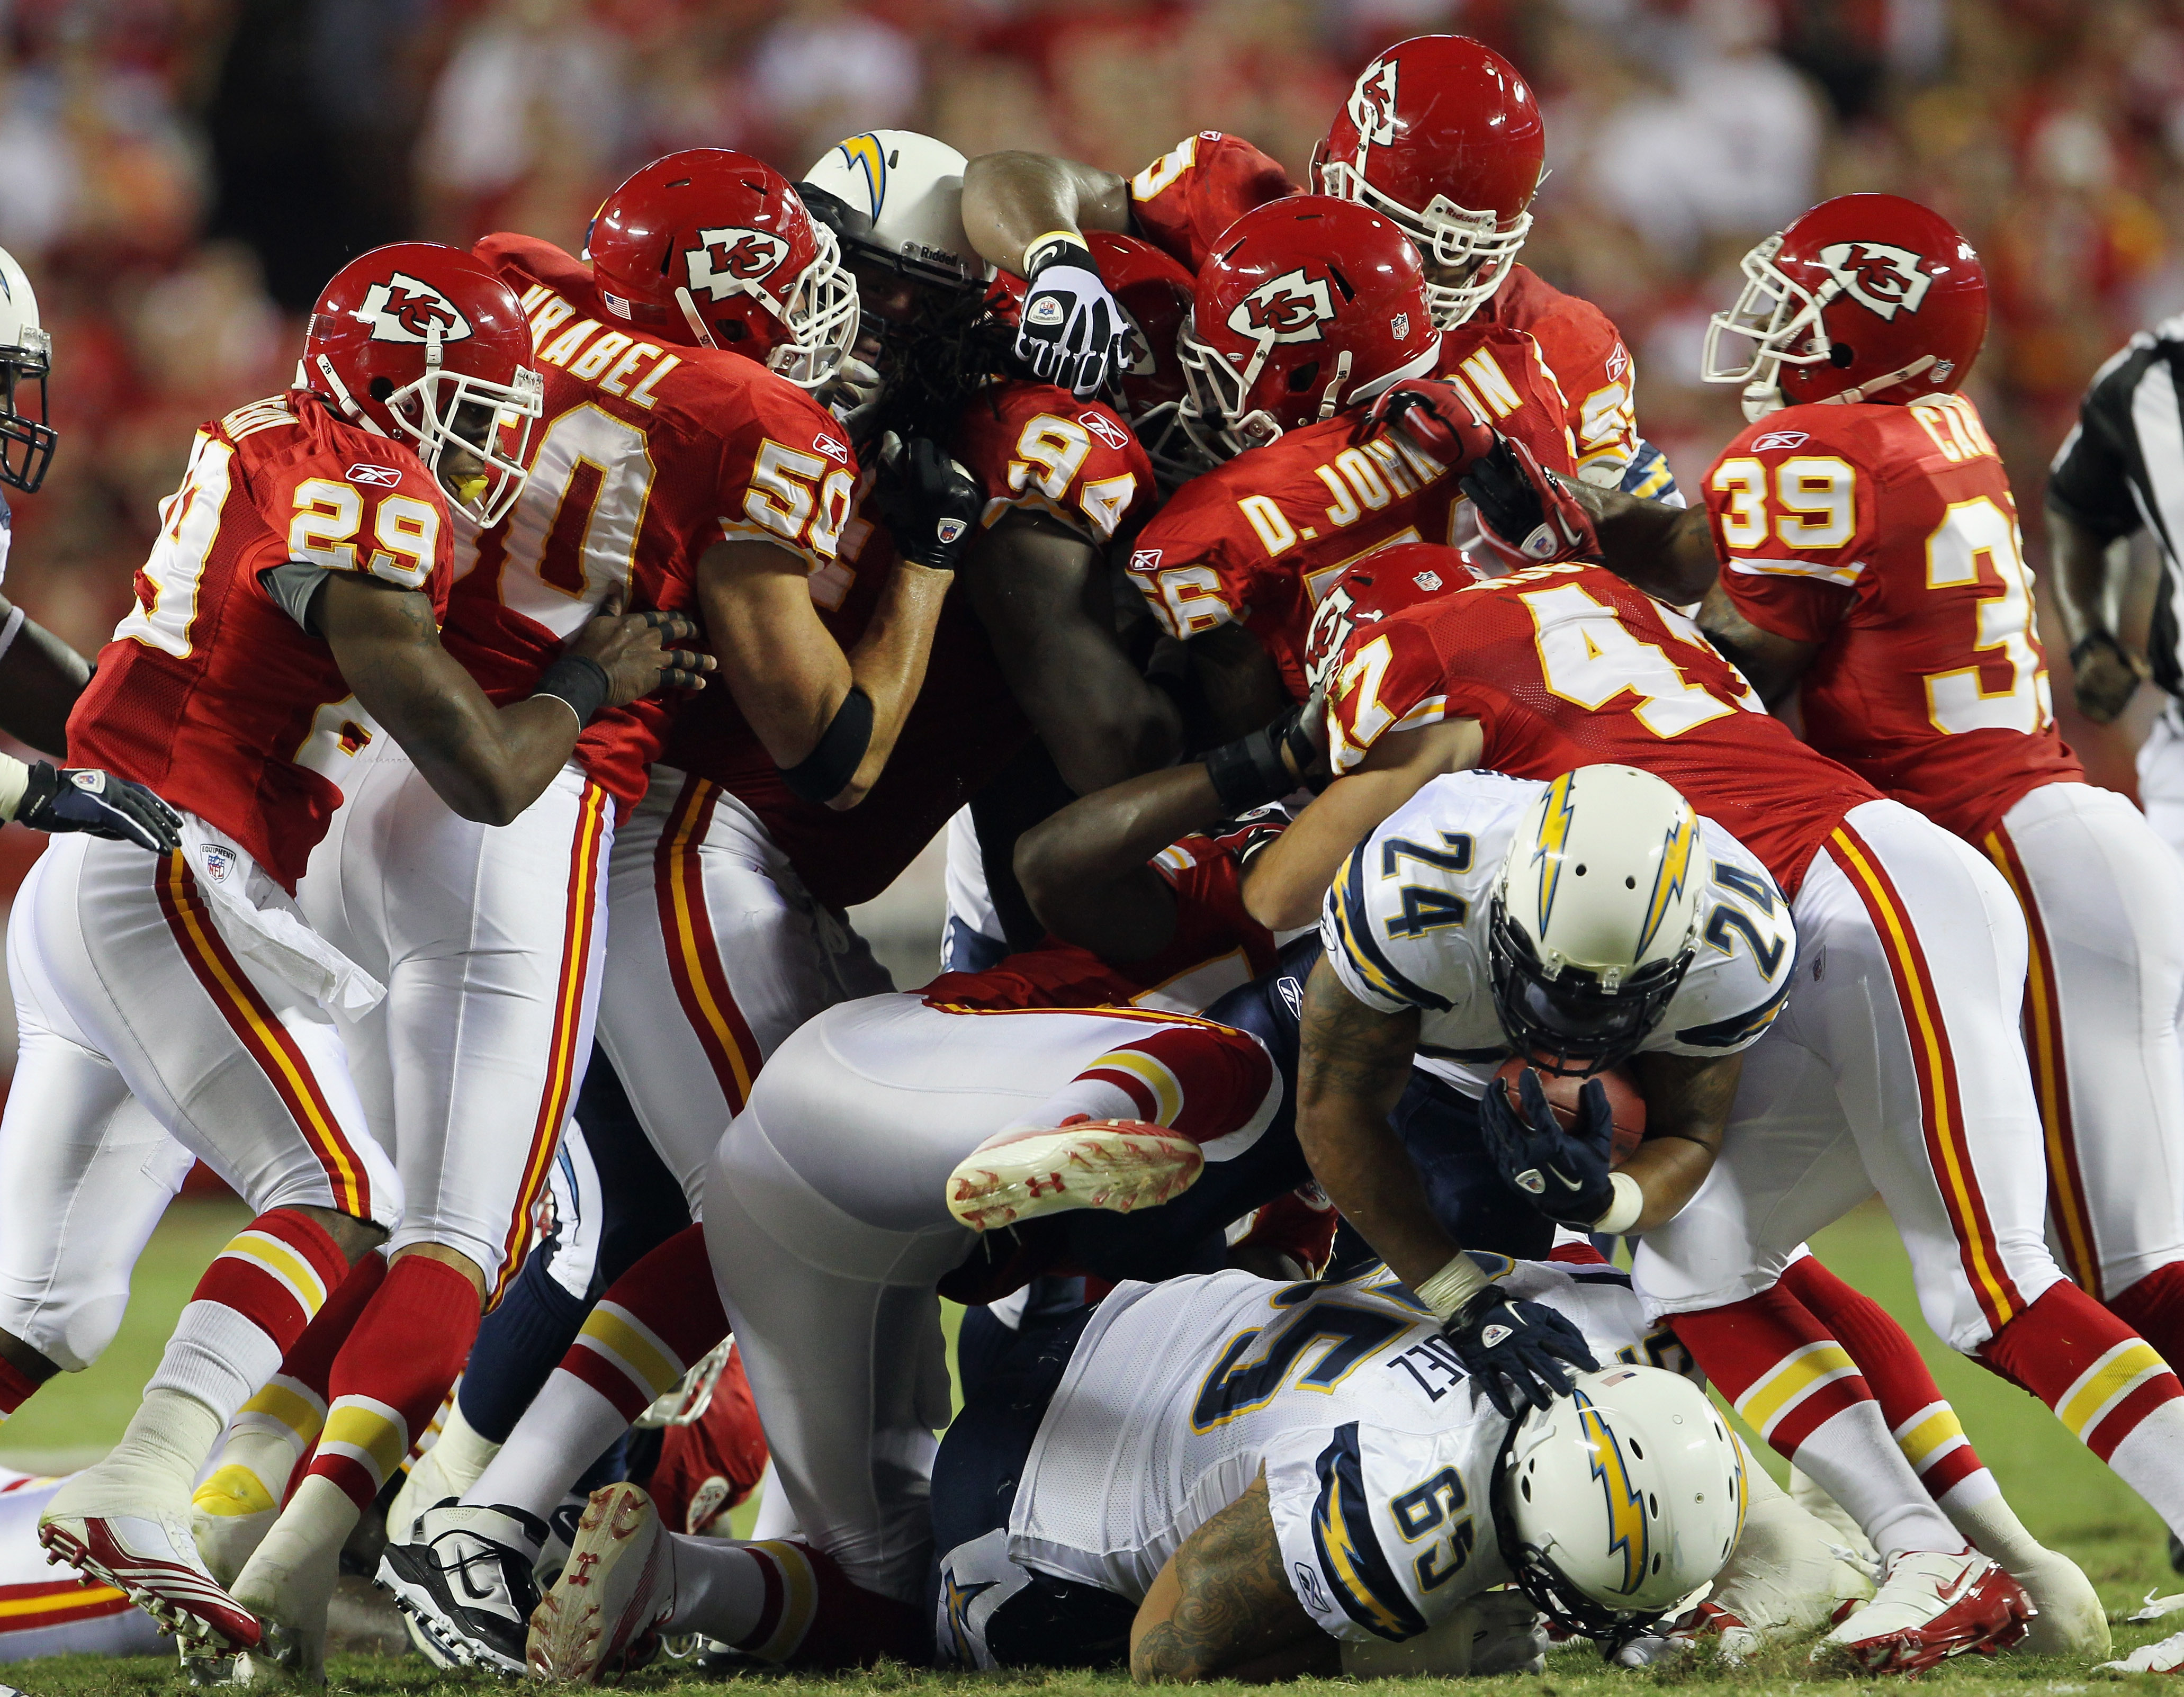 Chiefs upset the Chargers on Monday Night